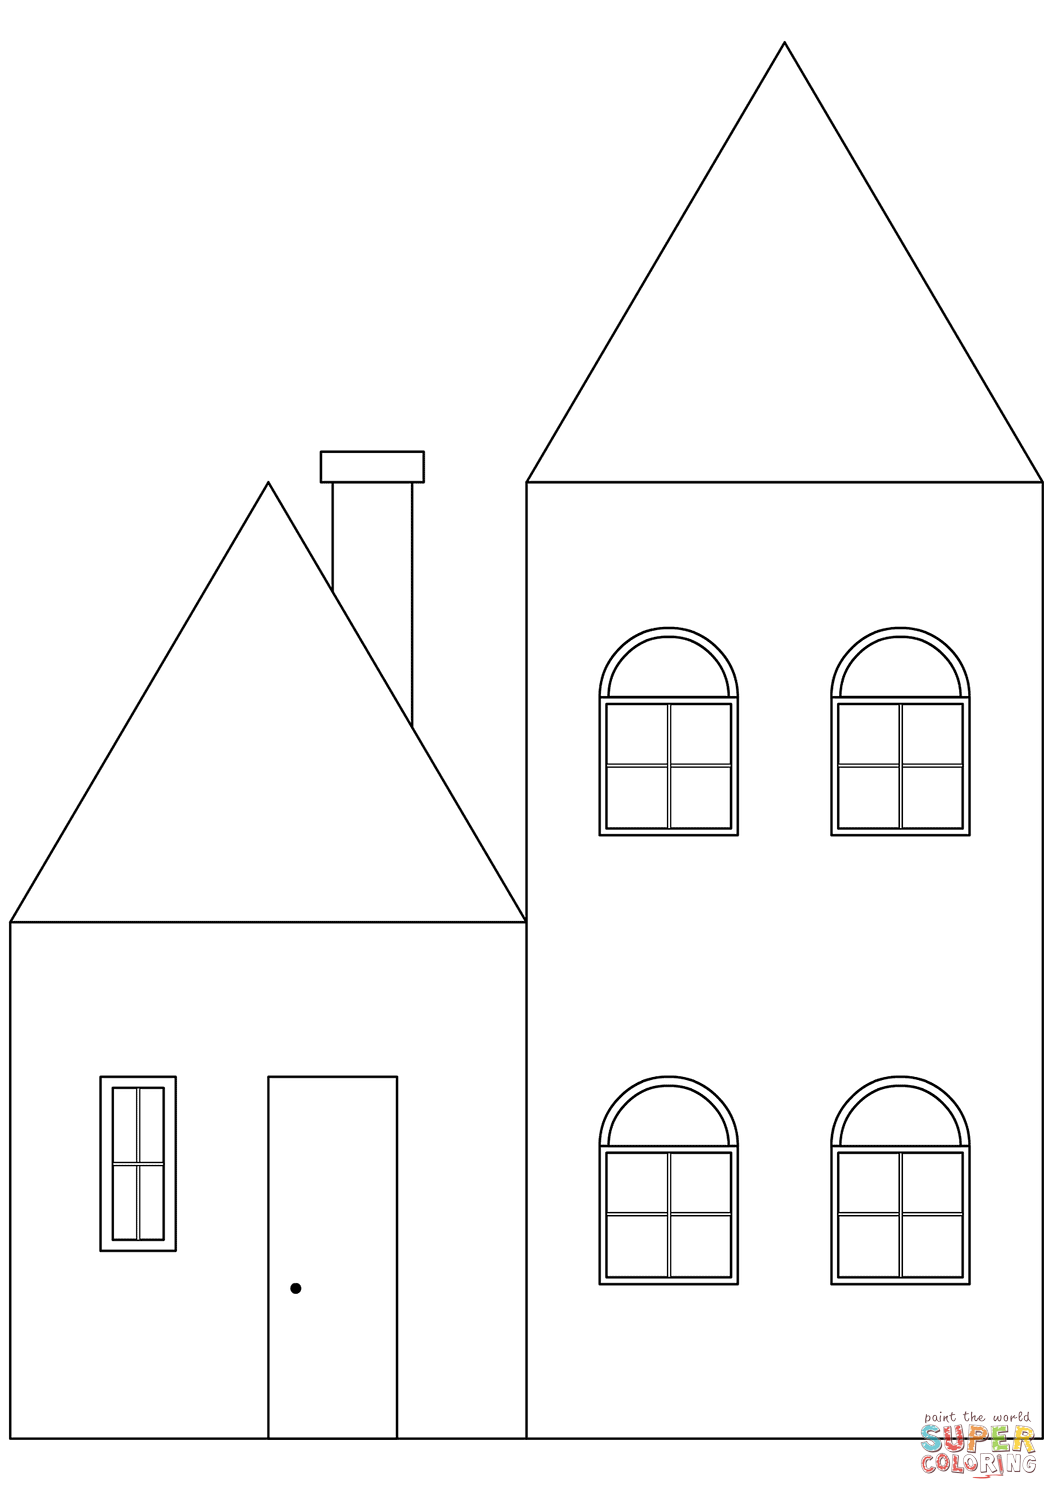 coloring house pictures free coloring sheets miscellaneous megaworkbook coloring house pictures